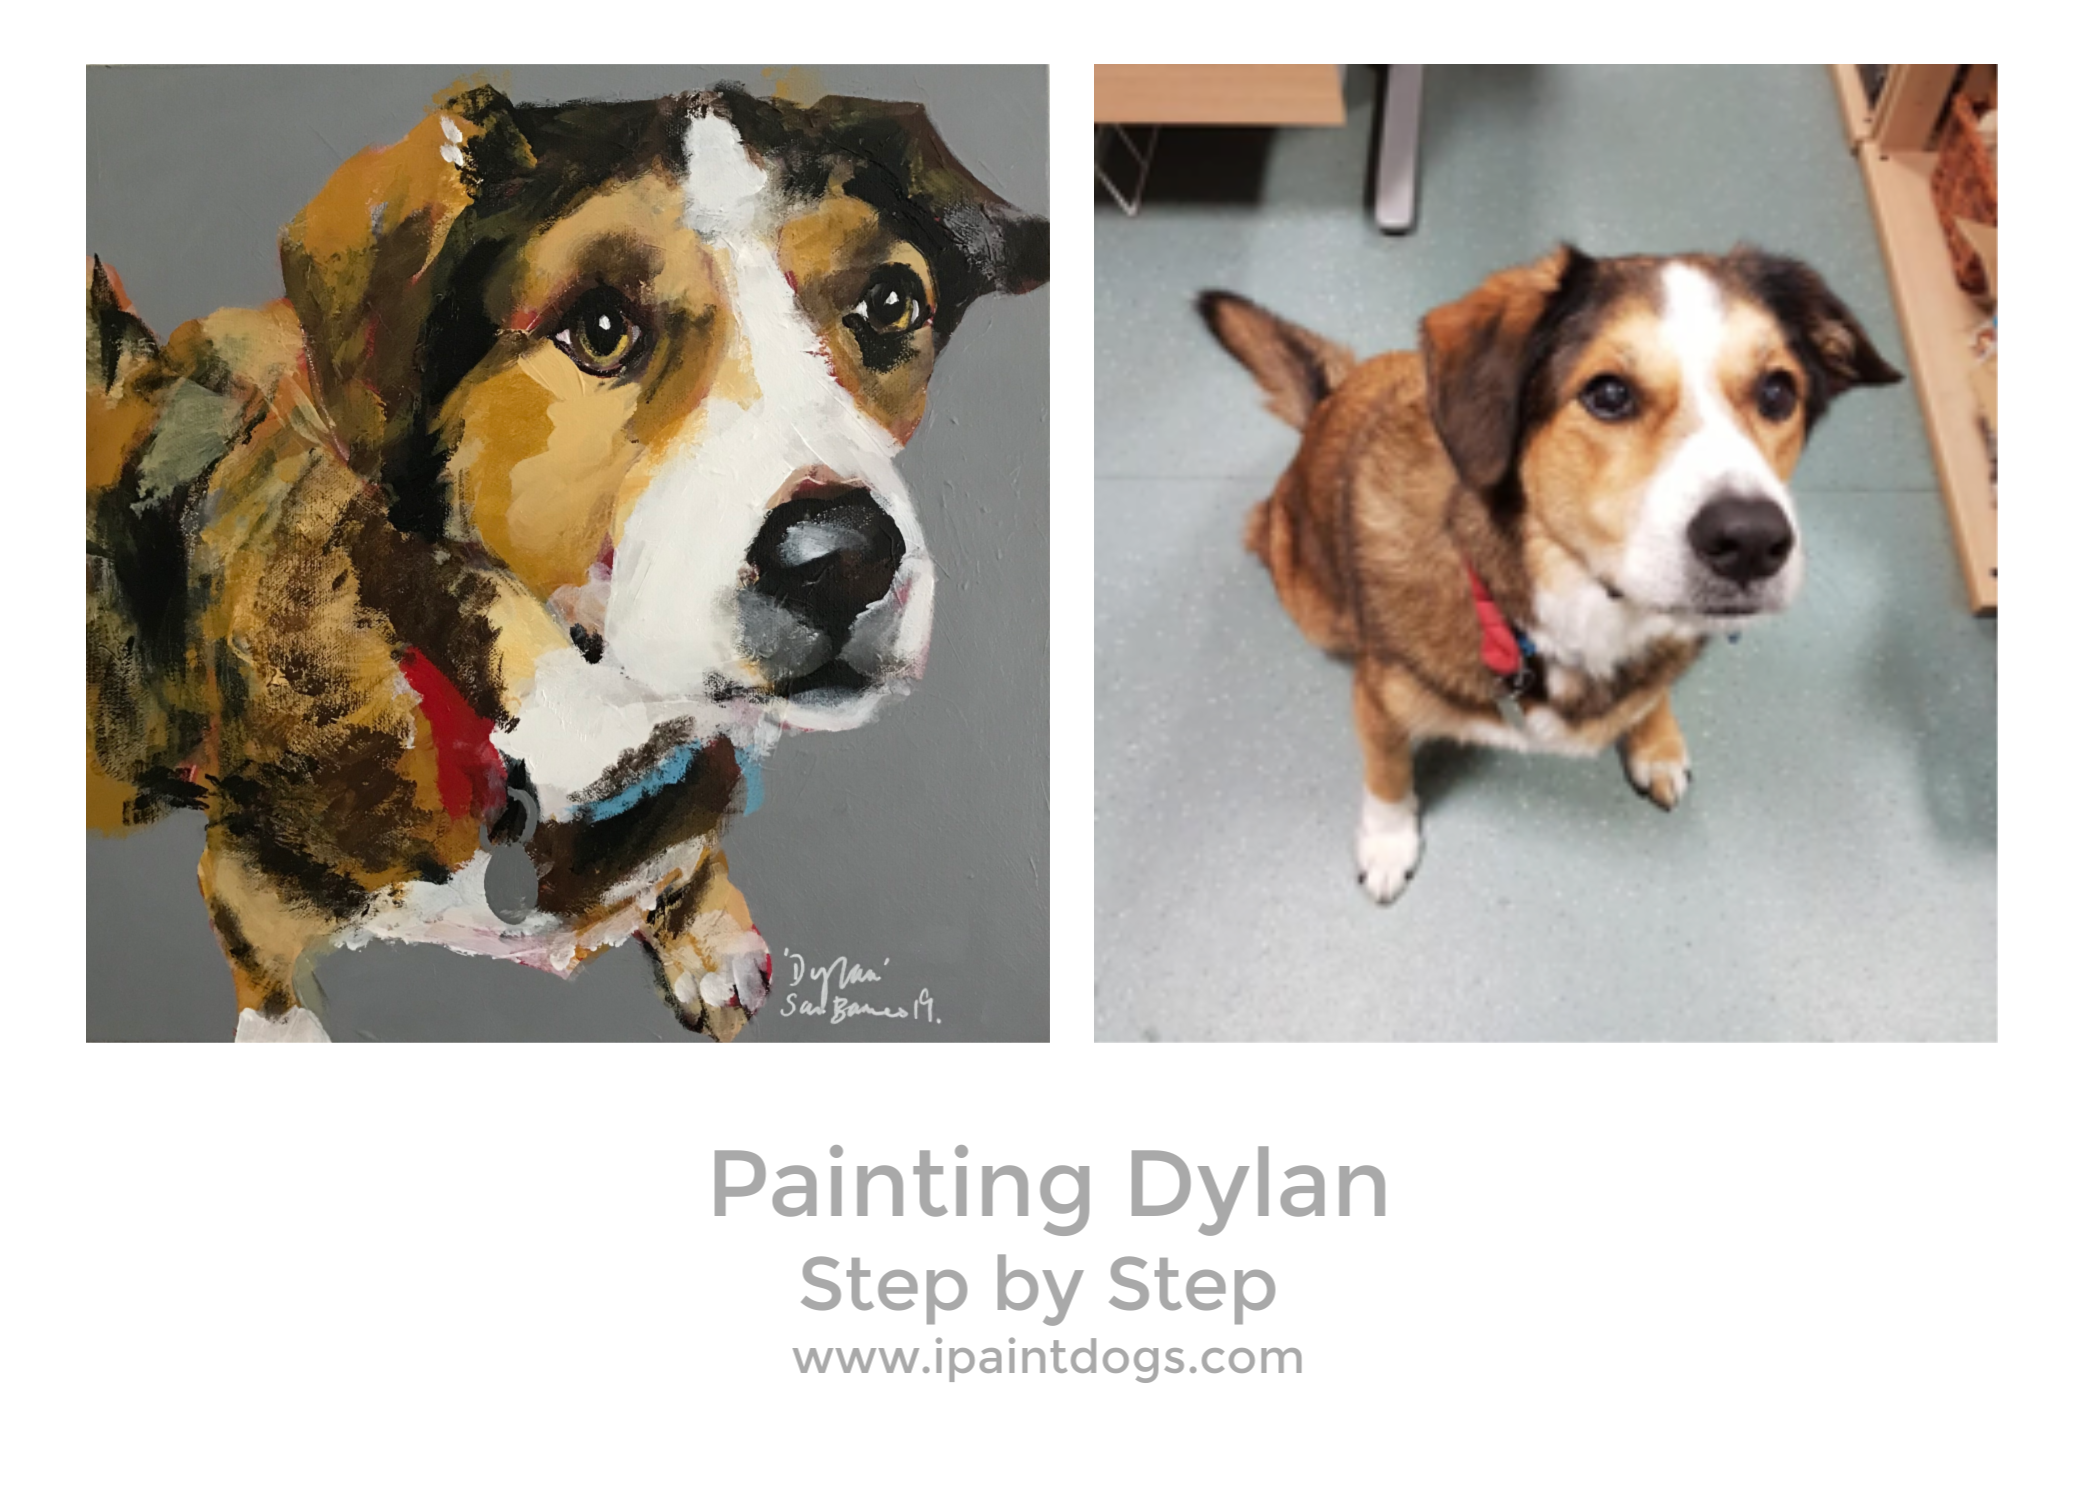 Painting Dylan, Step by Step by Samantha Barnes, ipaintdogs.com